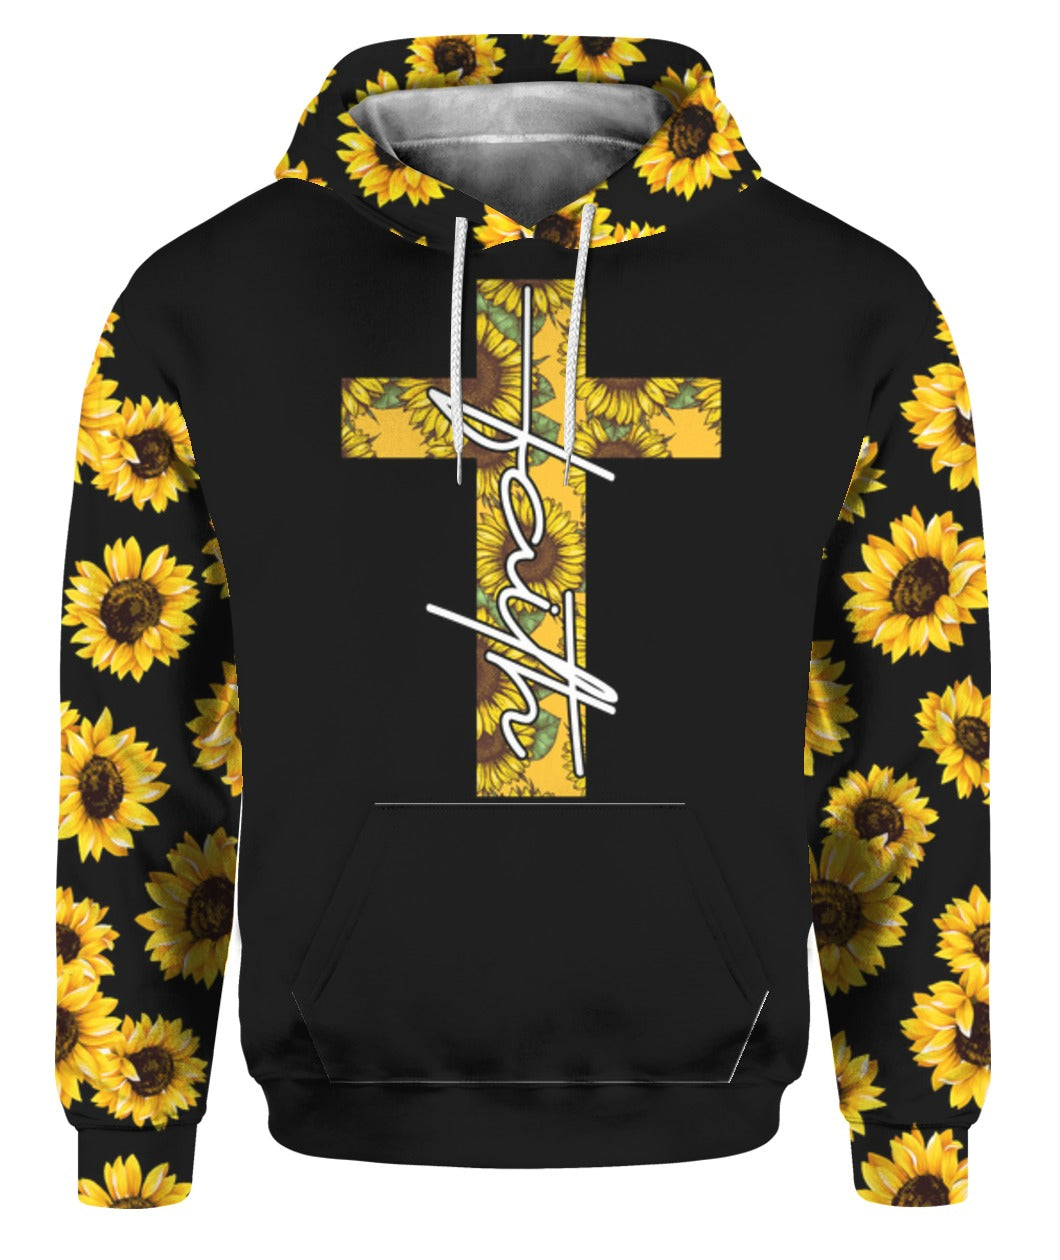 Jesus Faith Sunflower 3D Hoodie Full Printed - Wonder Hippie Official